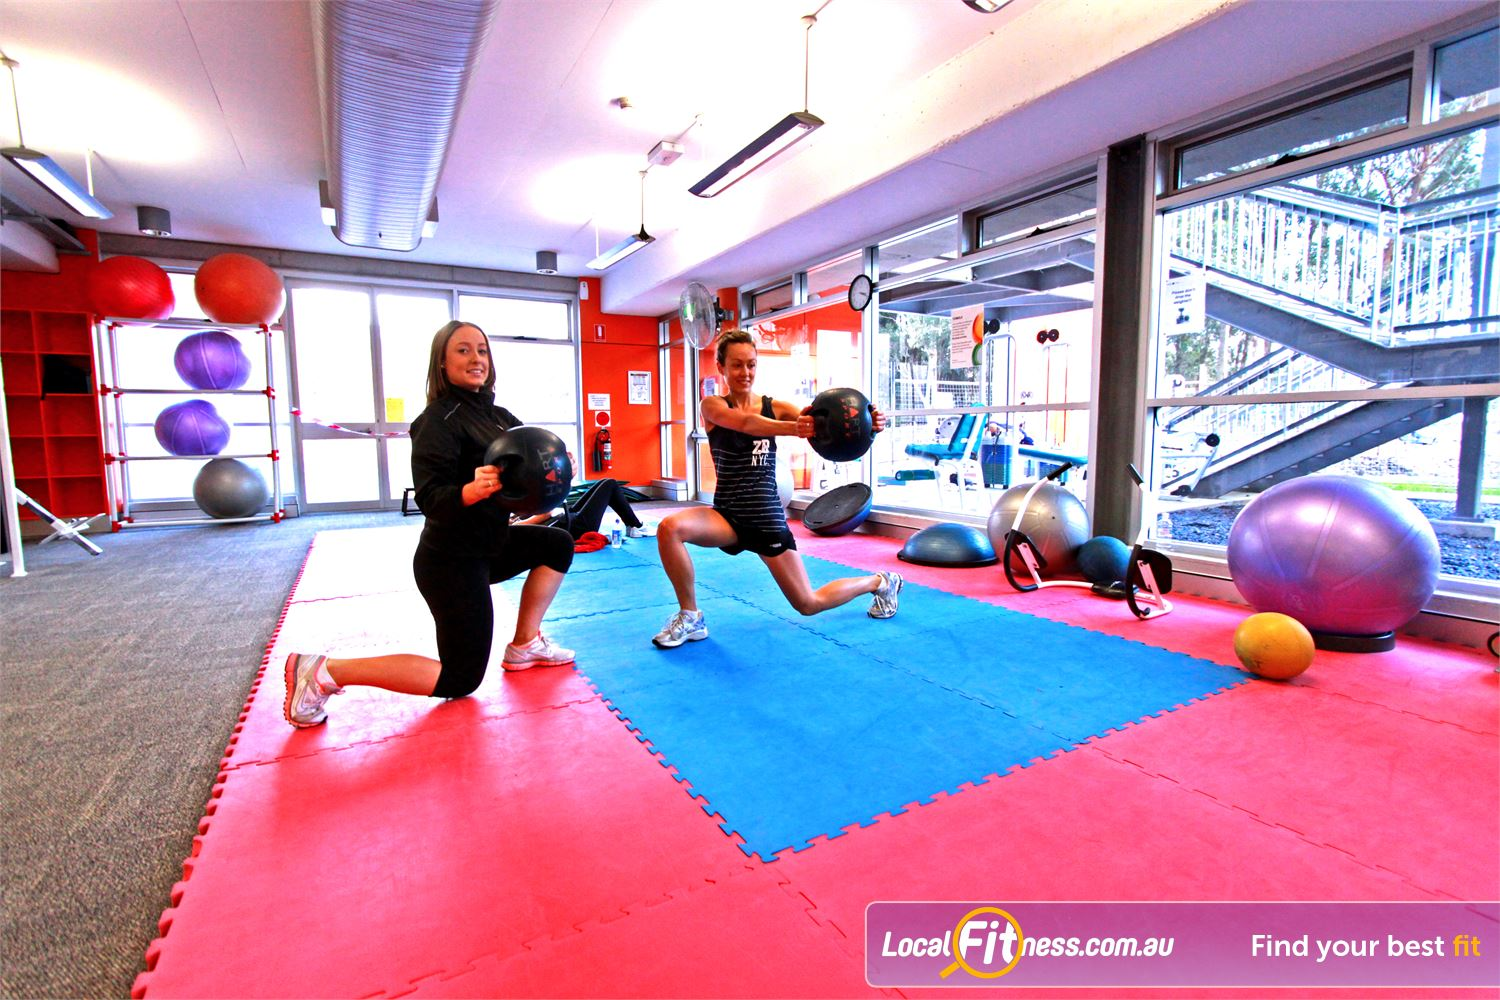 Macquarie University Sport & Aquatic Centre Near Marsfield Our Macquarie University gym provides a dedicated ab and stretching area.